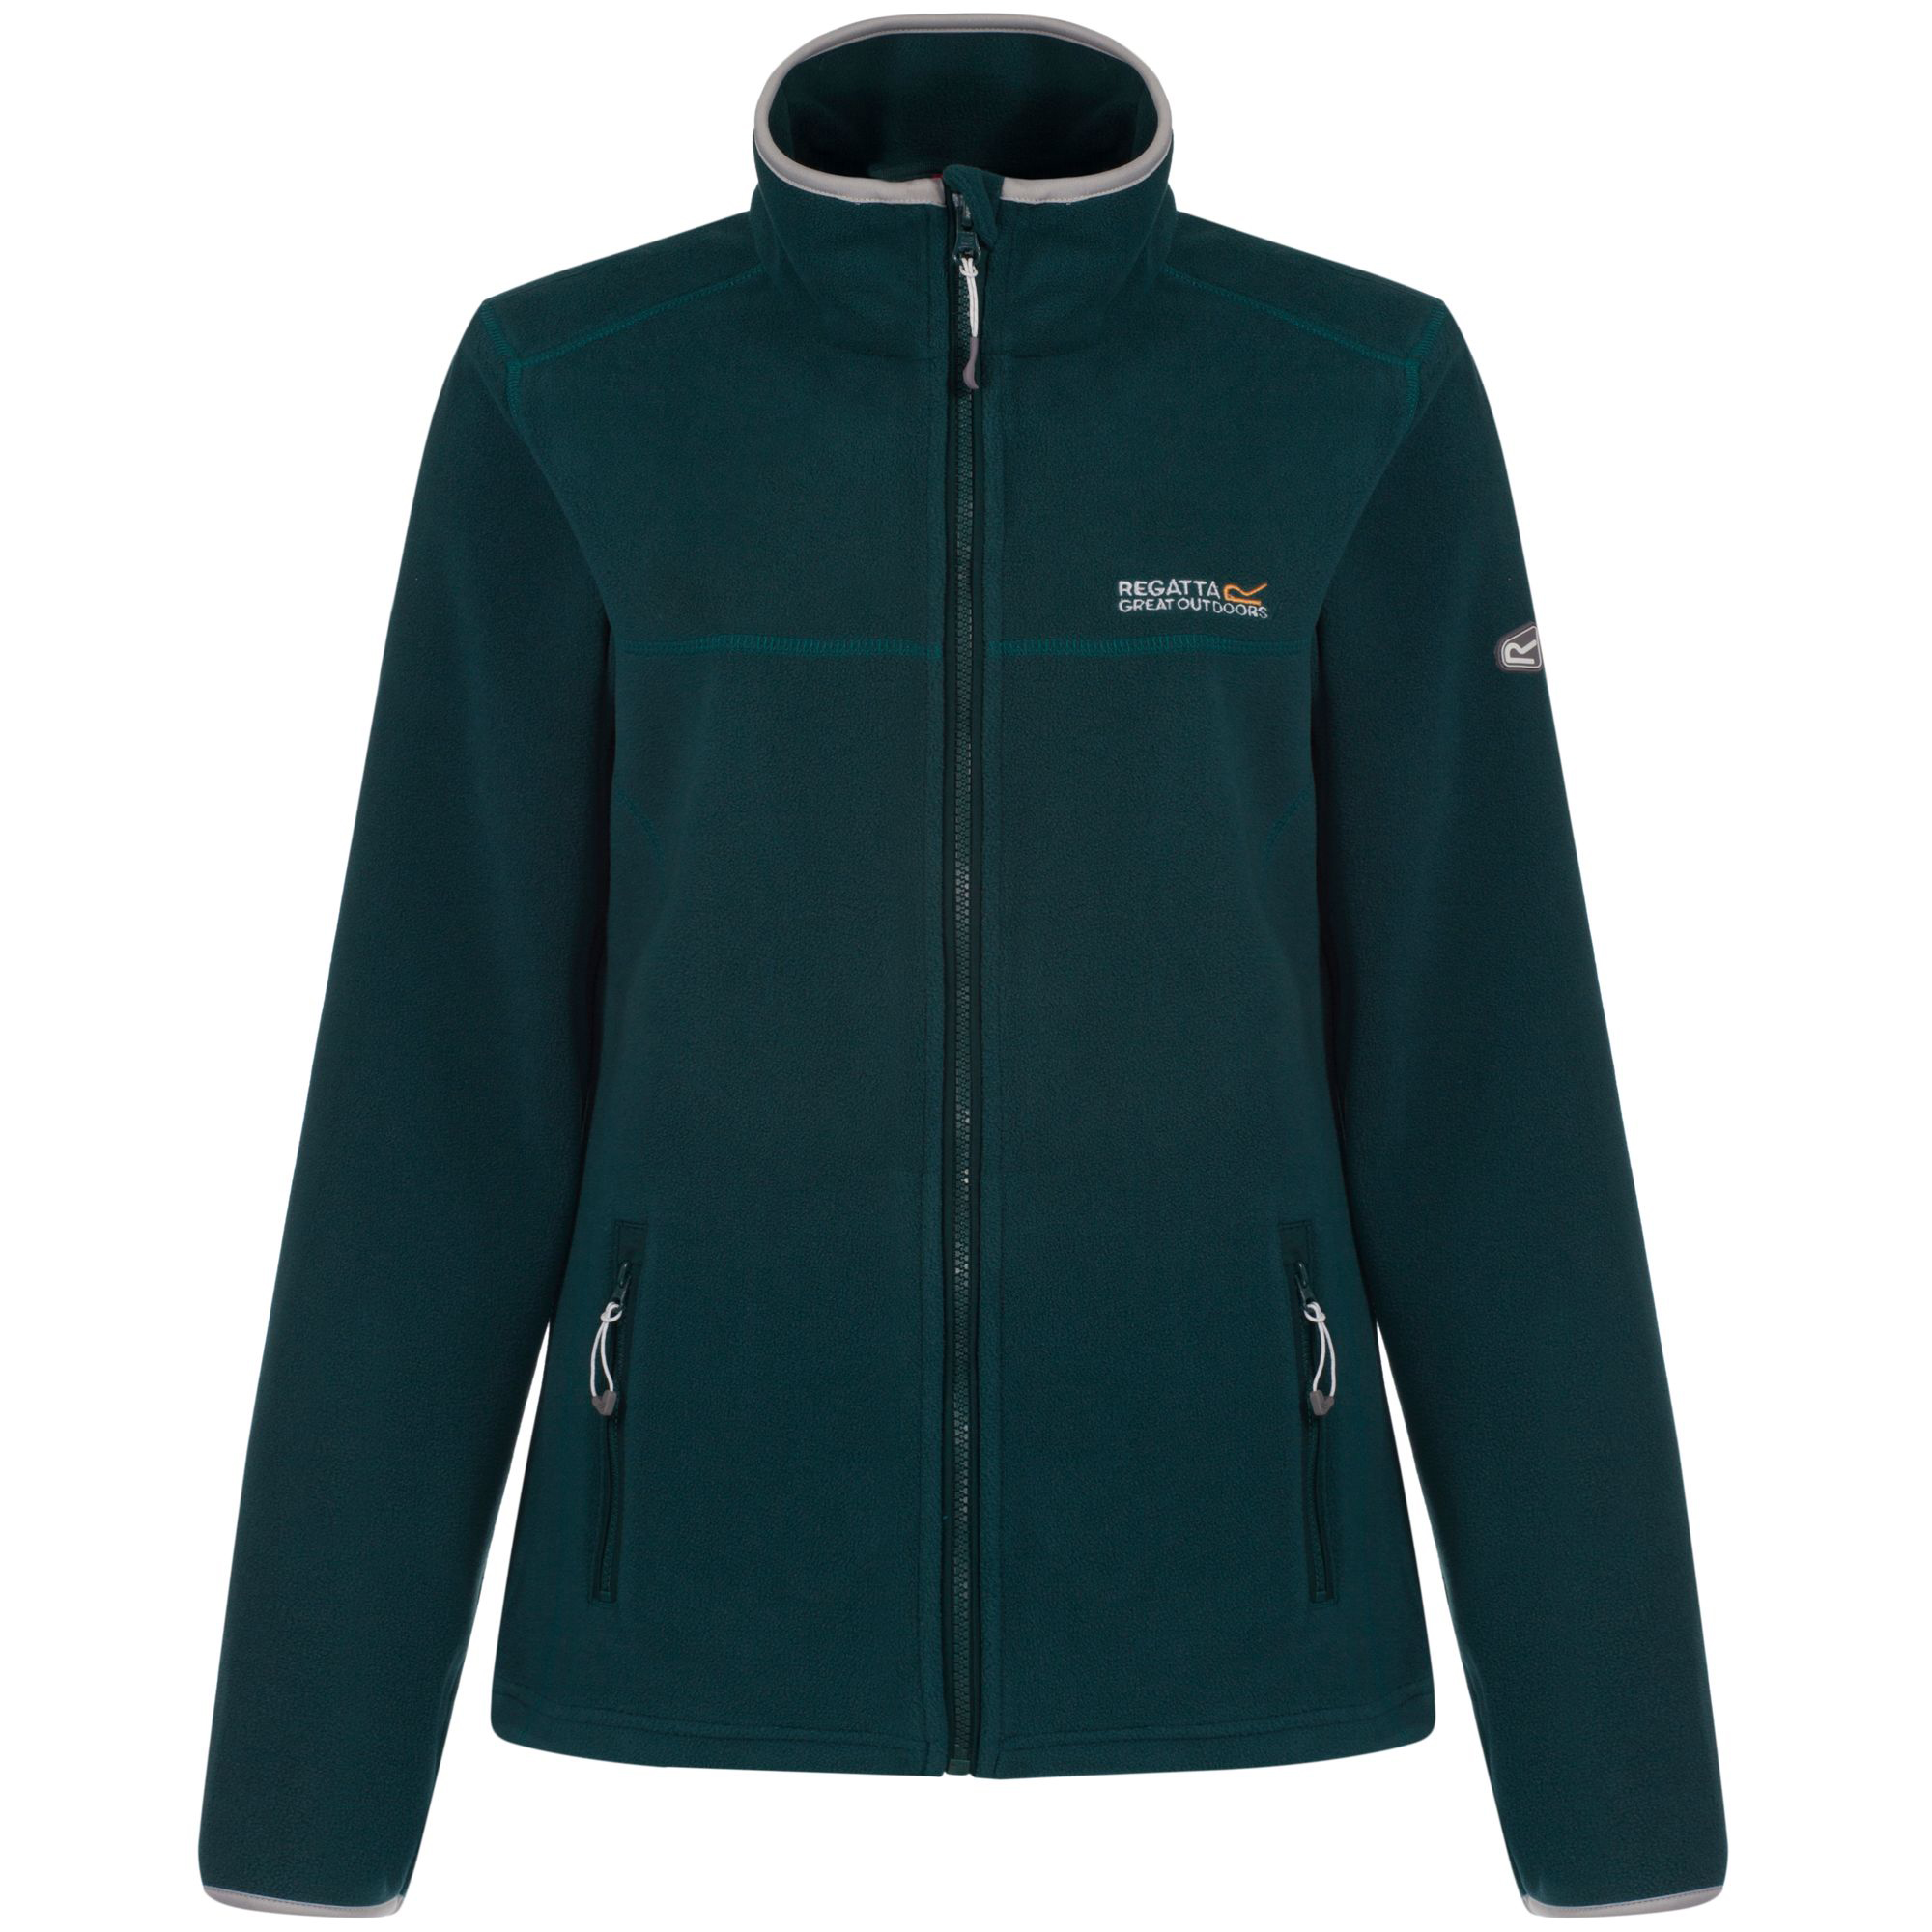 Regatta Great Outdoors Womens/Ladies Floreo II Full Zip Fleece ...